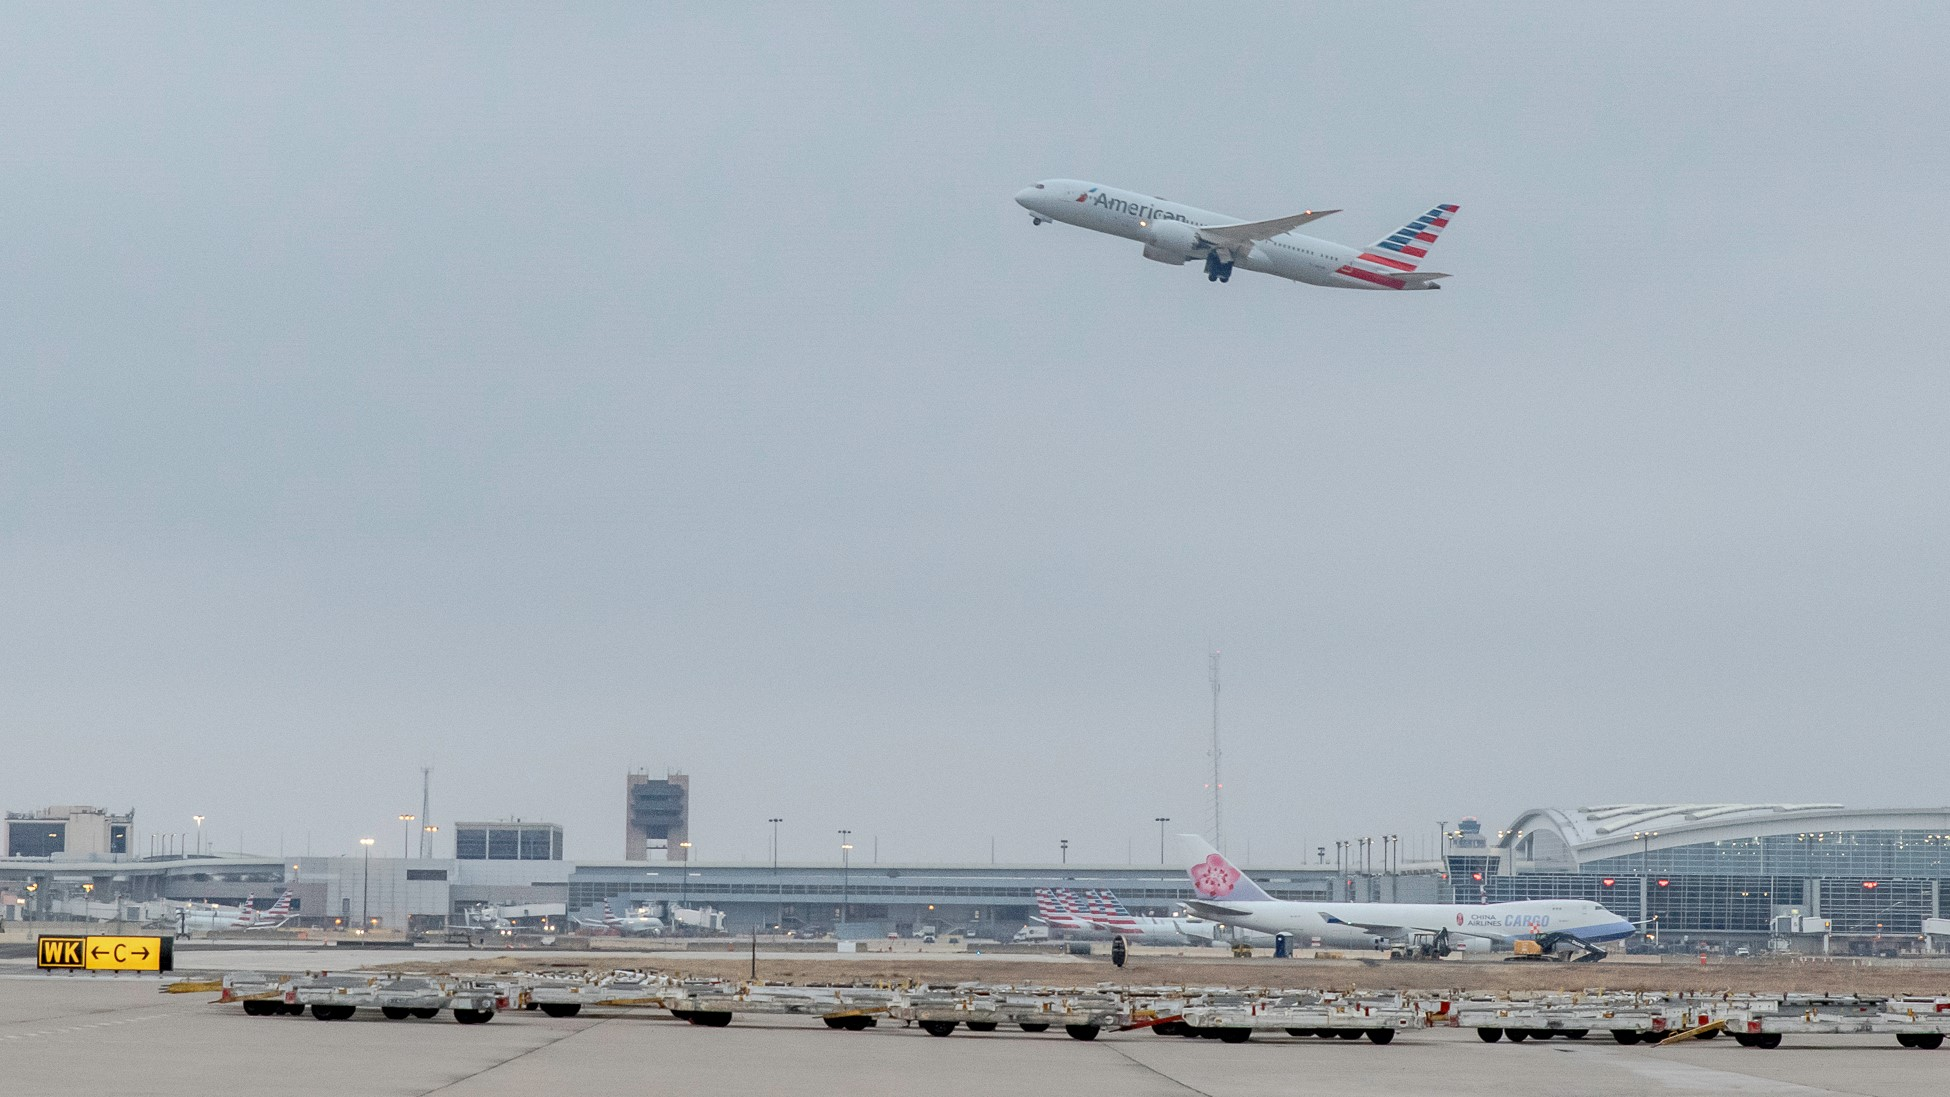 A plane rises above airport with cargo equipment in foreground.